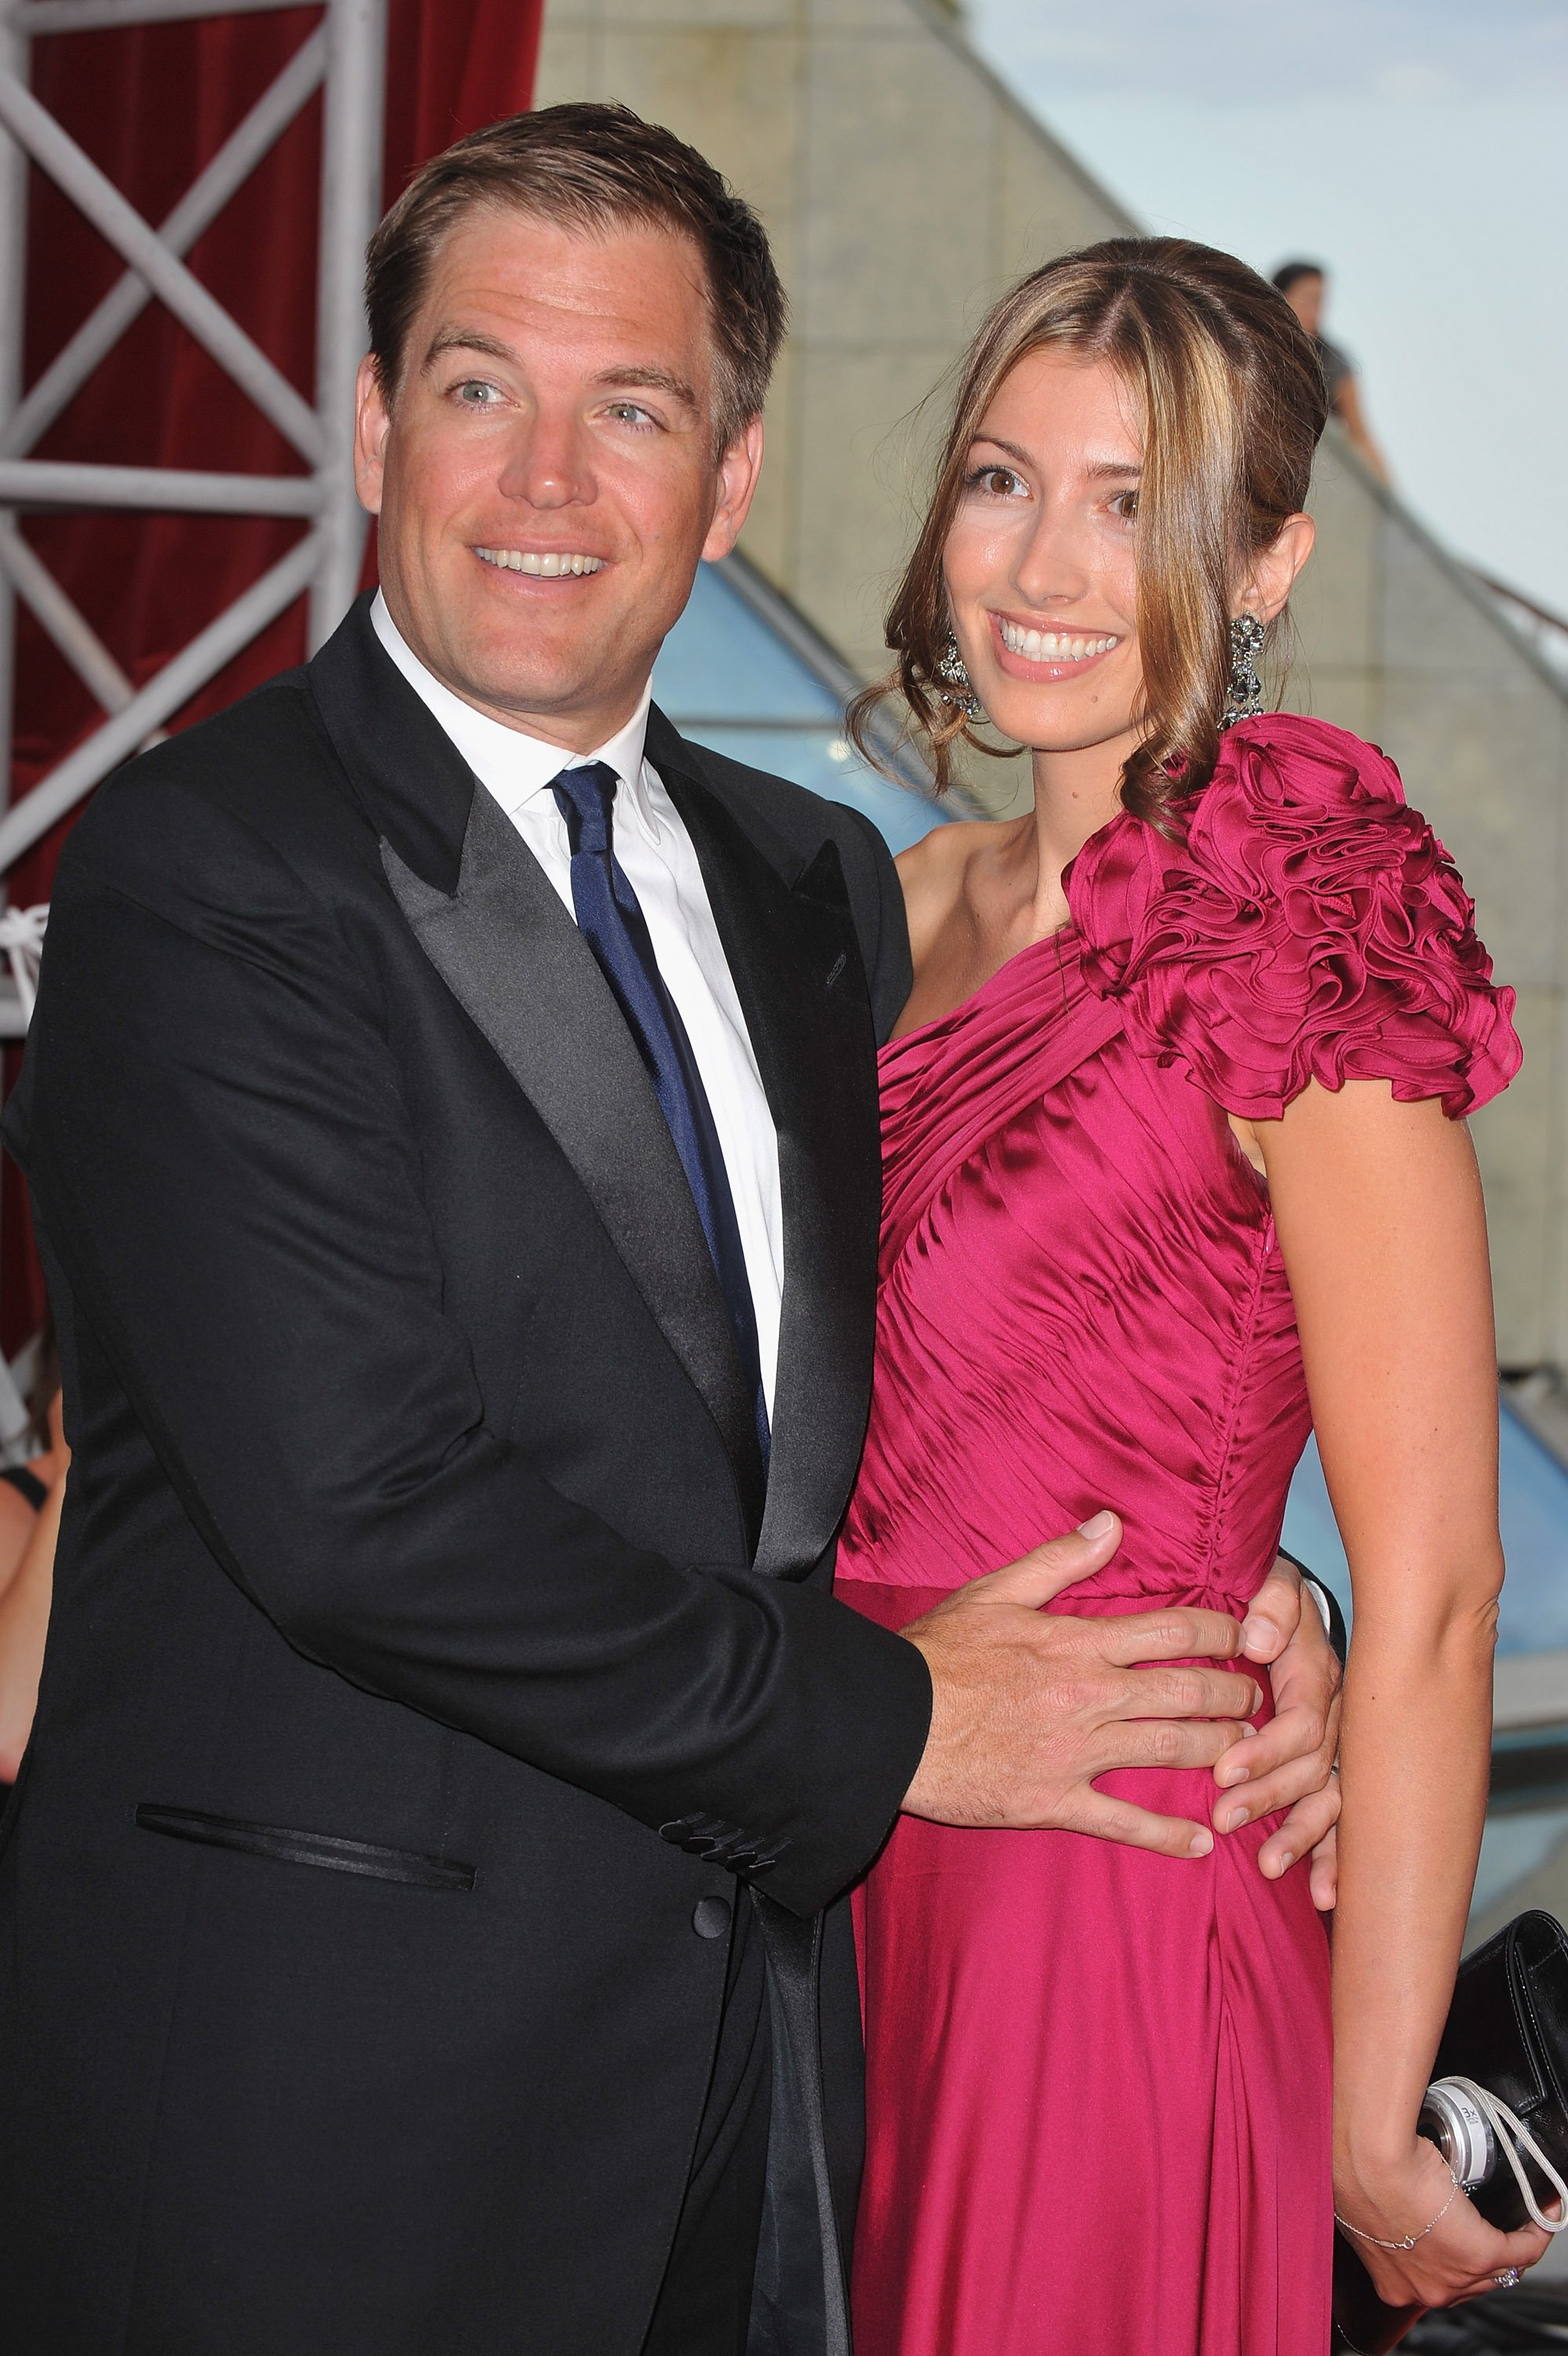 Michael Weatherly and his wife Bojana Jankovic arrive at the Closing Ceremony of the 2010 Monte Carlo Television Festival held at Grimaldi Forum on June 10, 2010, in Monte-Carlo, Monaco. | Source: Getty Images.